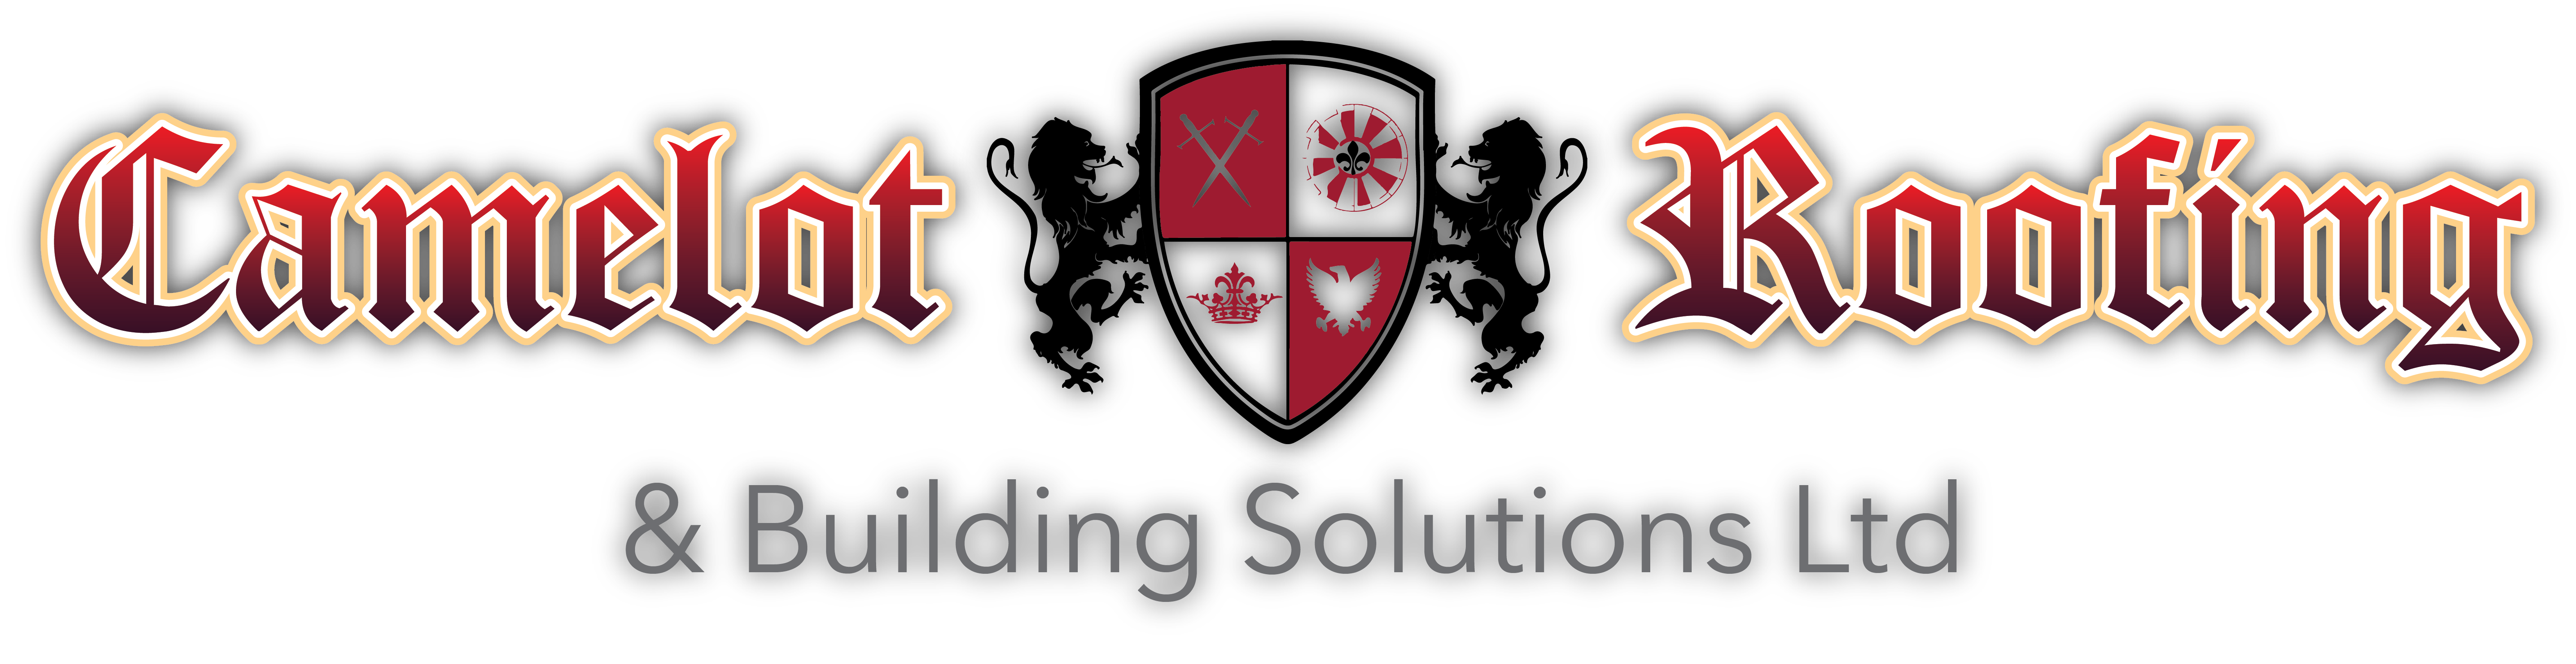 Camelot Roofing & Building Solutions Ltd company logo